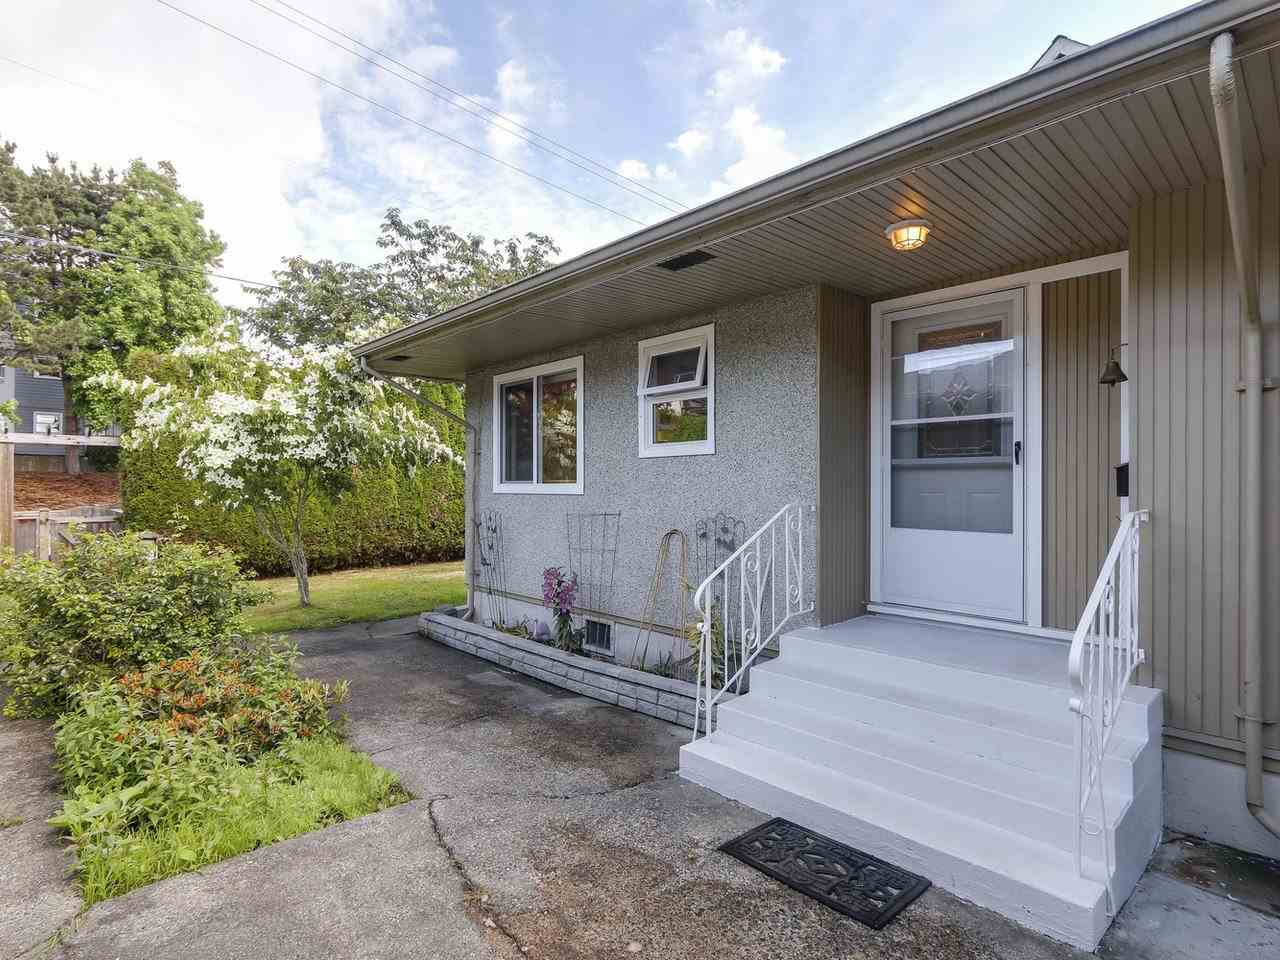 Photo 3: C 5068 47A Avenue in Delta: Ladner Elementary House 1/2 Duplex for sale (Ladner)  : MLS(r) # R2179730